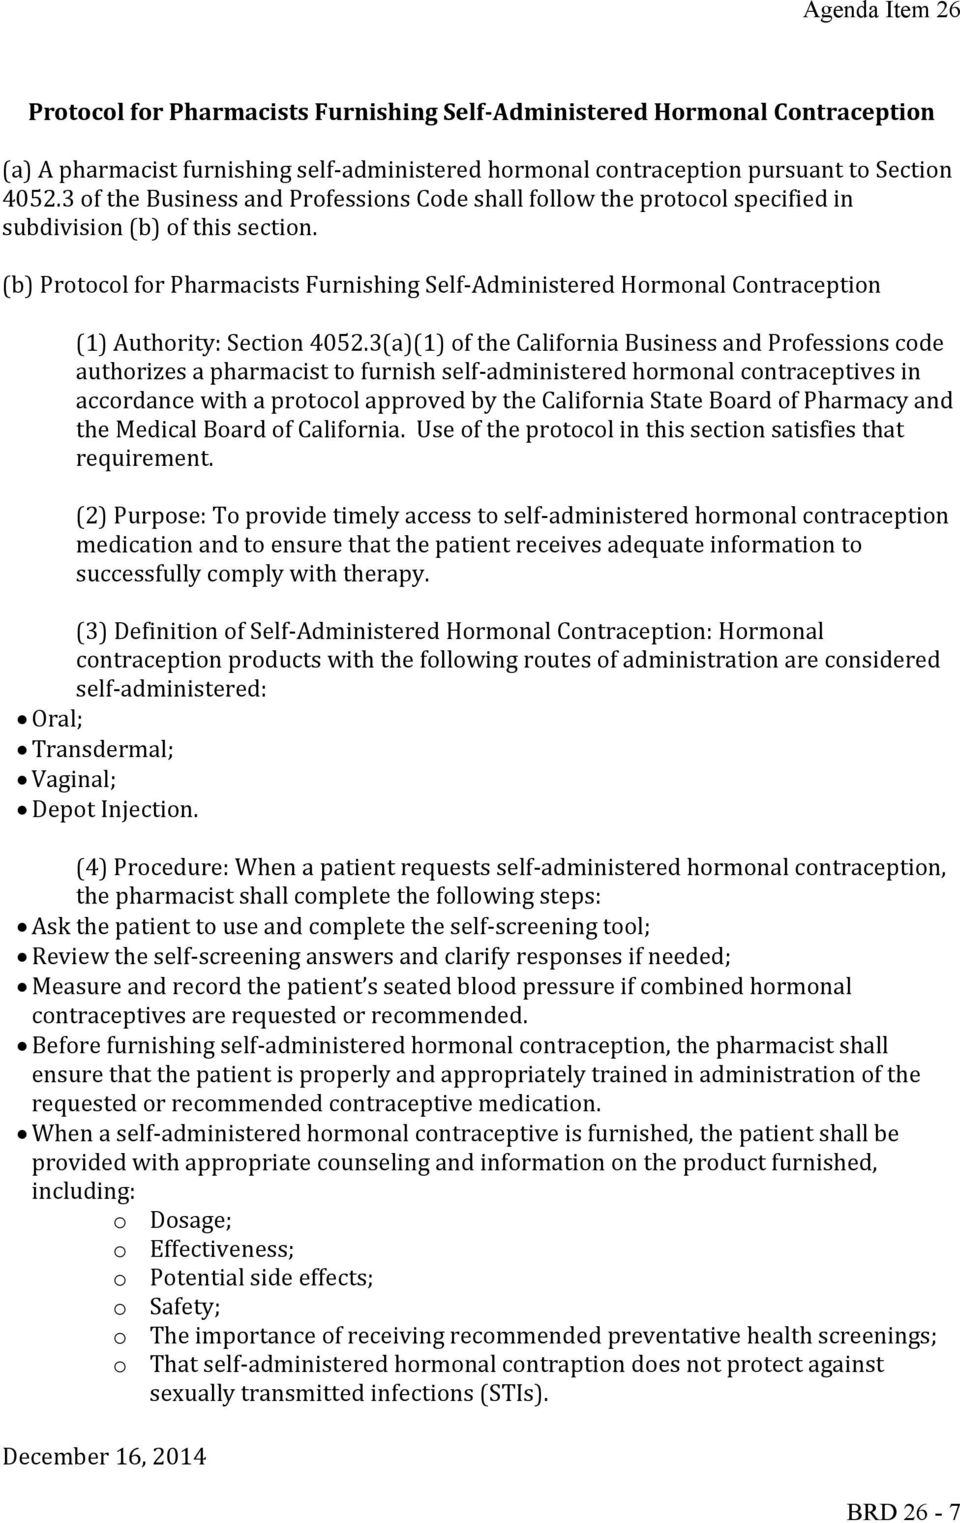 (b) Protocol for Pharmacists Furnishing Self-Administered Hormonal Contraception (1) Authority: Section 4052.